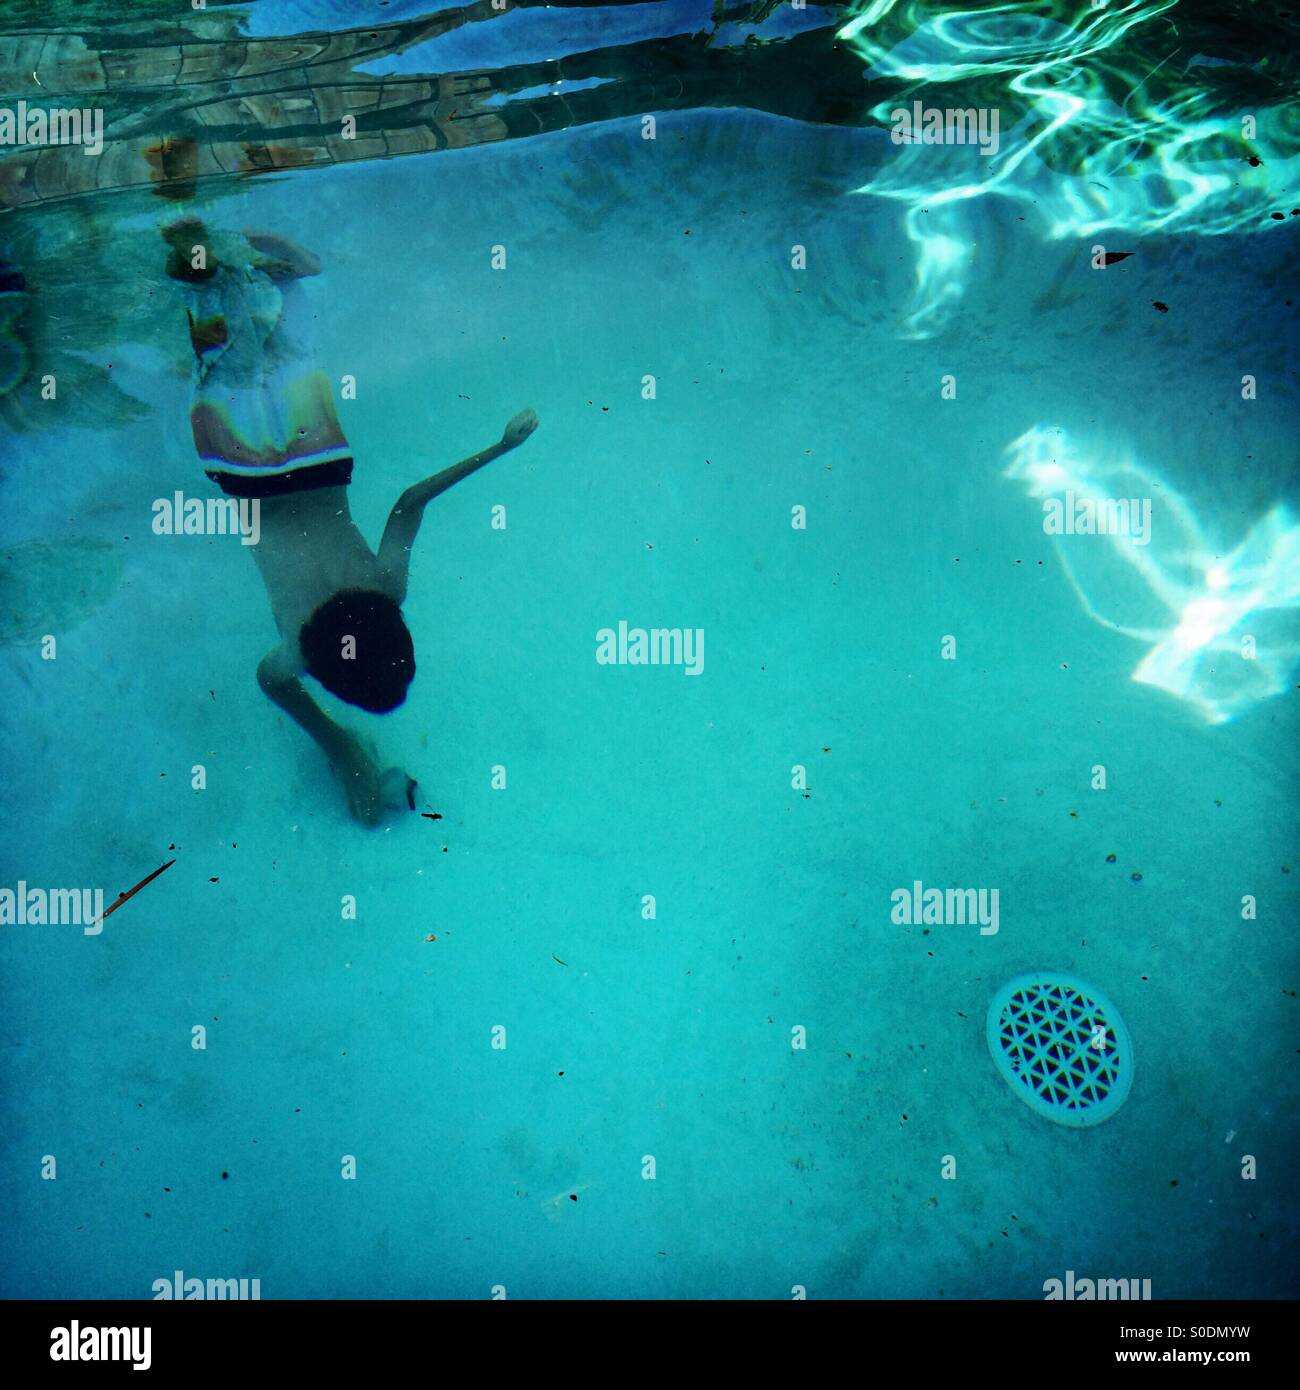 A seven year old boy dives to the bottom of a swimming pool to get his dive mask. - Stock Image